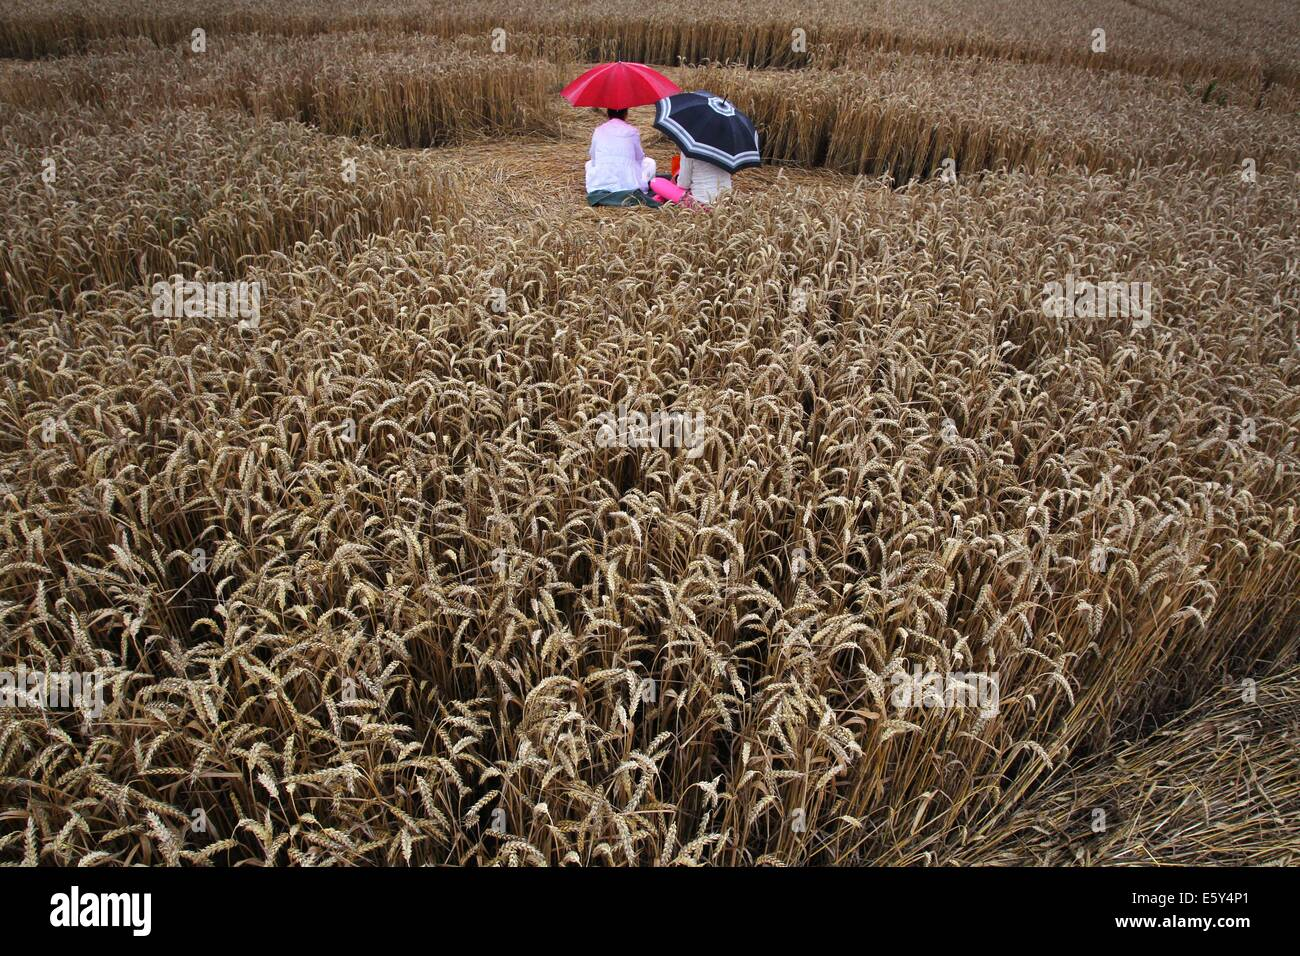 Raisting, Germany. 26th July, 2014. Excursionists sit underneath an umbrella in a cornfield near Raisting, Germany, - Stock Image